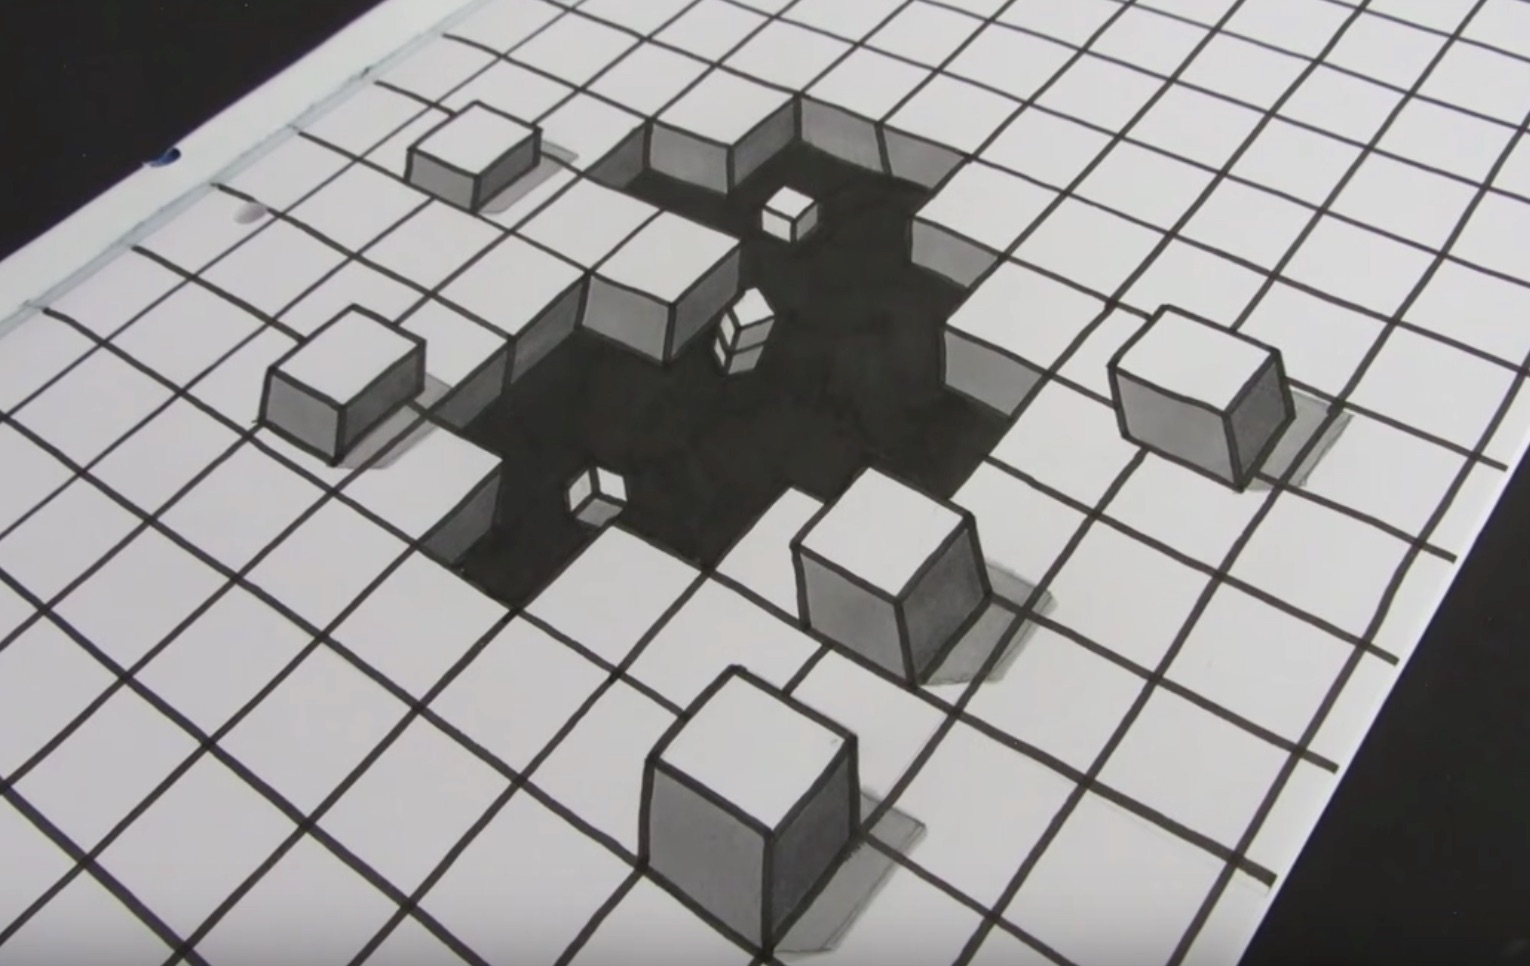 Simple Way To Draw A 3d Optical Illusion Of Cubes Falling Through